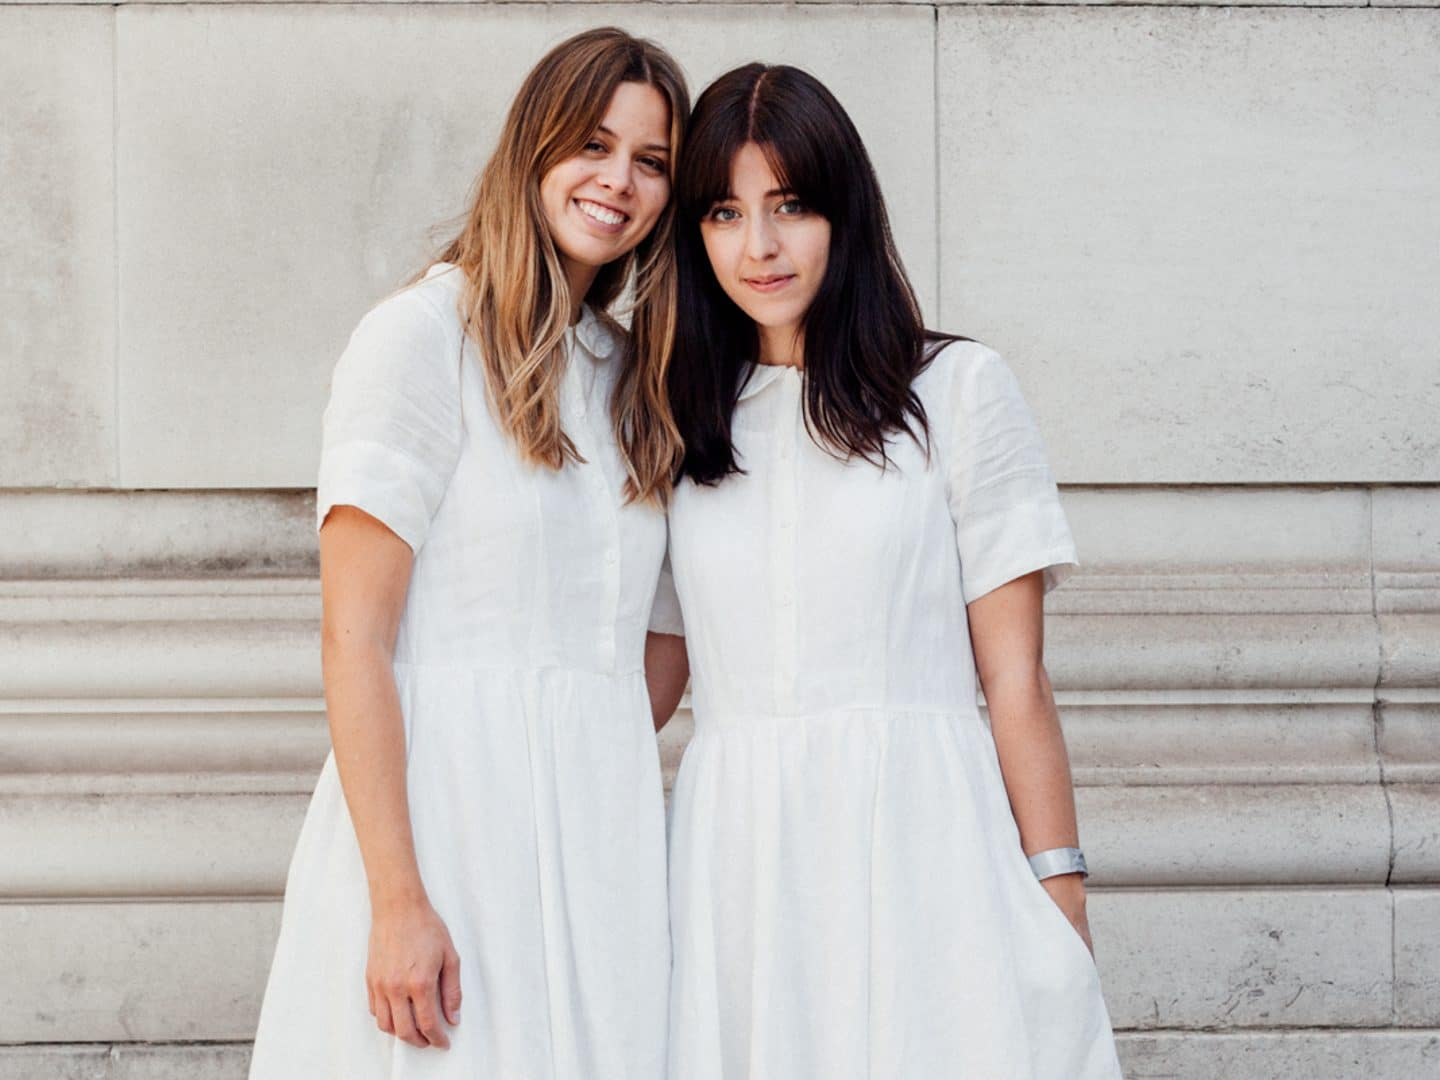 Besma and Jil in white dresses by Son de Flor